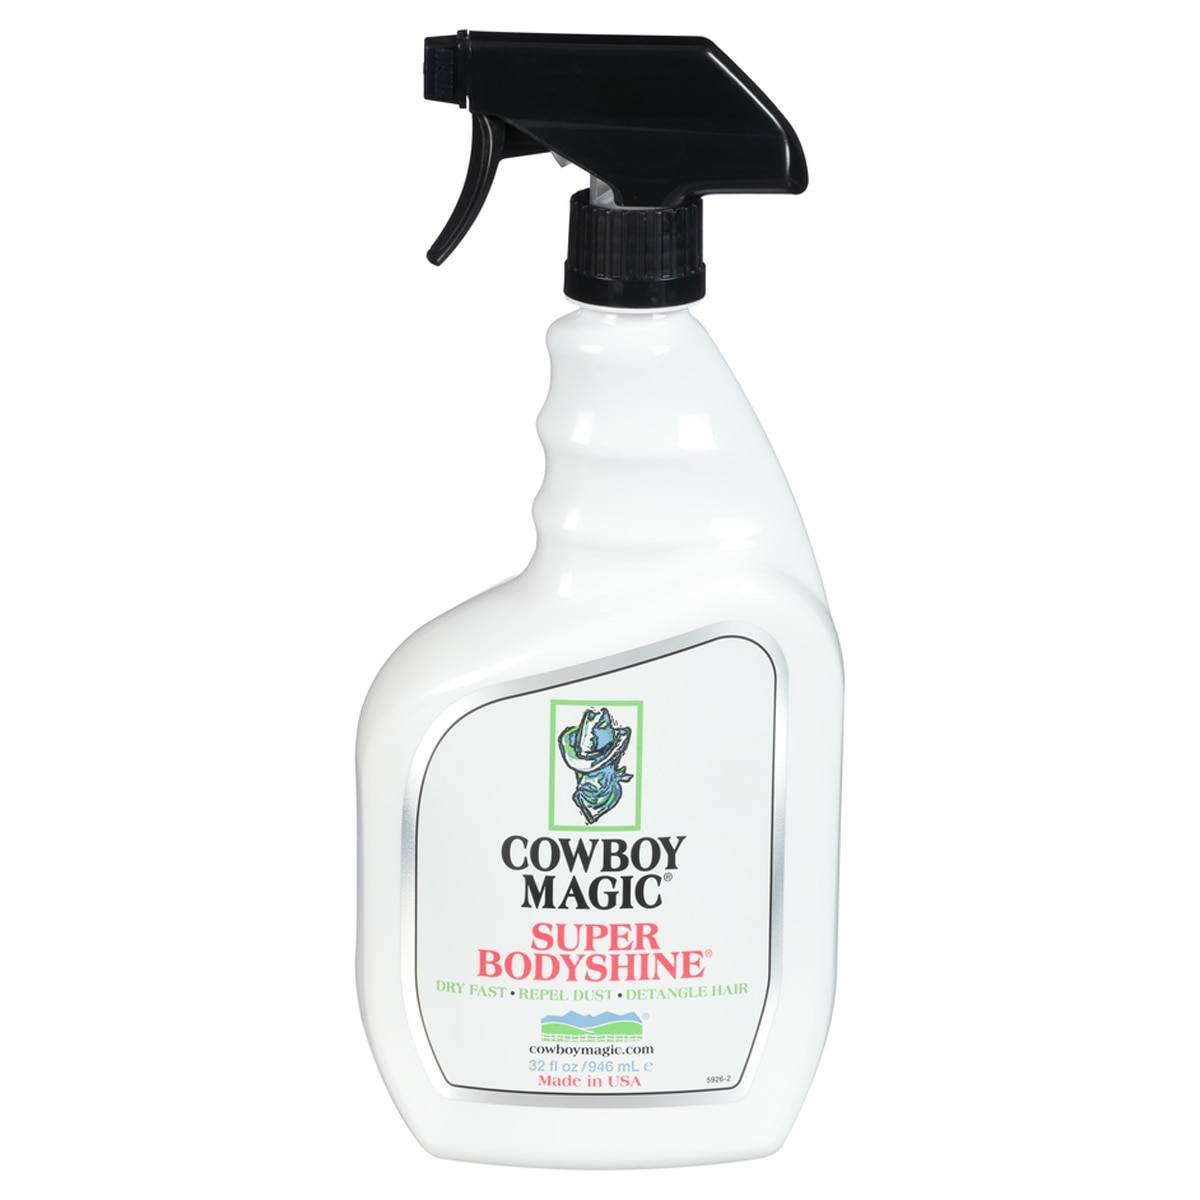 Super BodyShine 32 oz